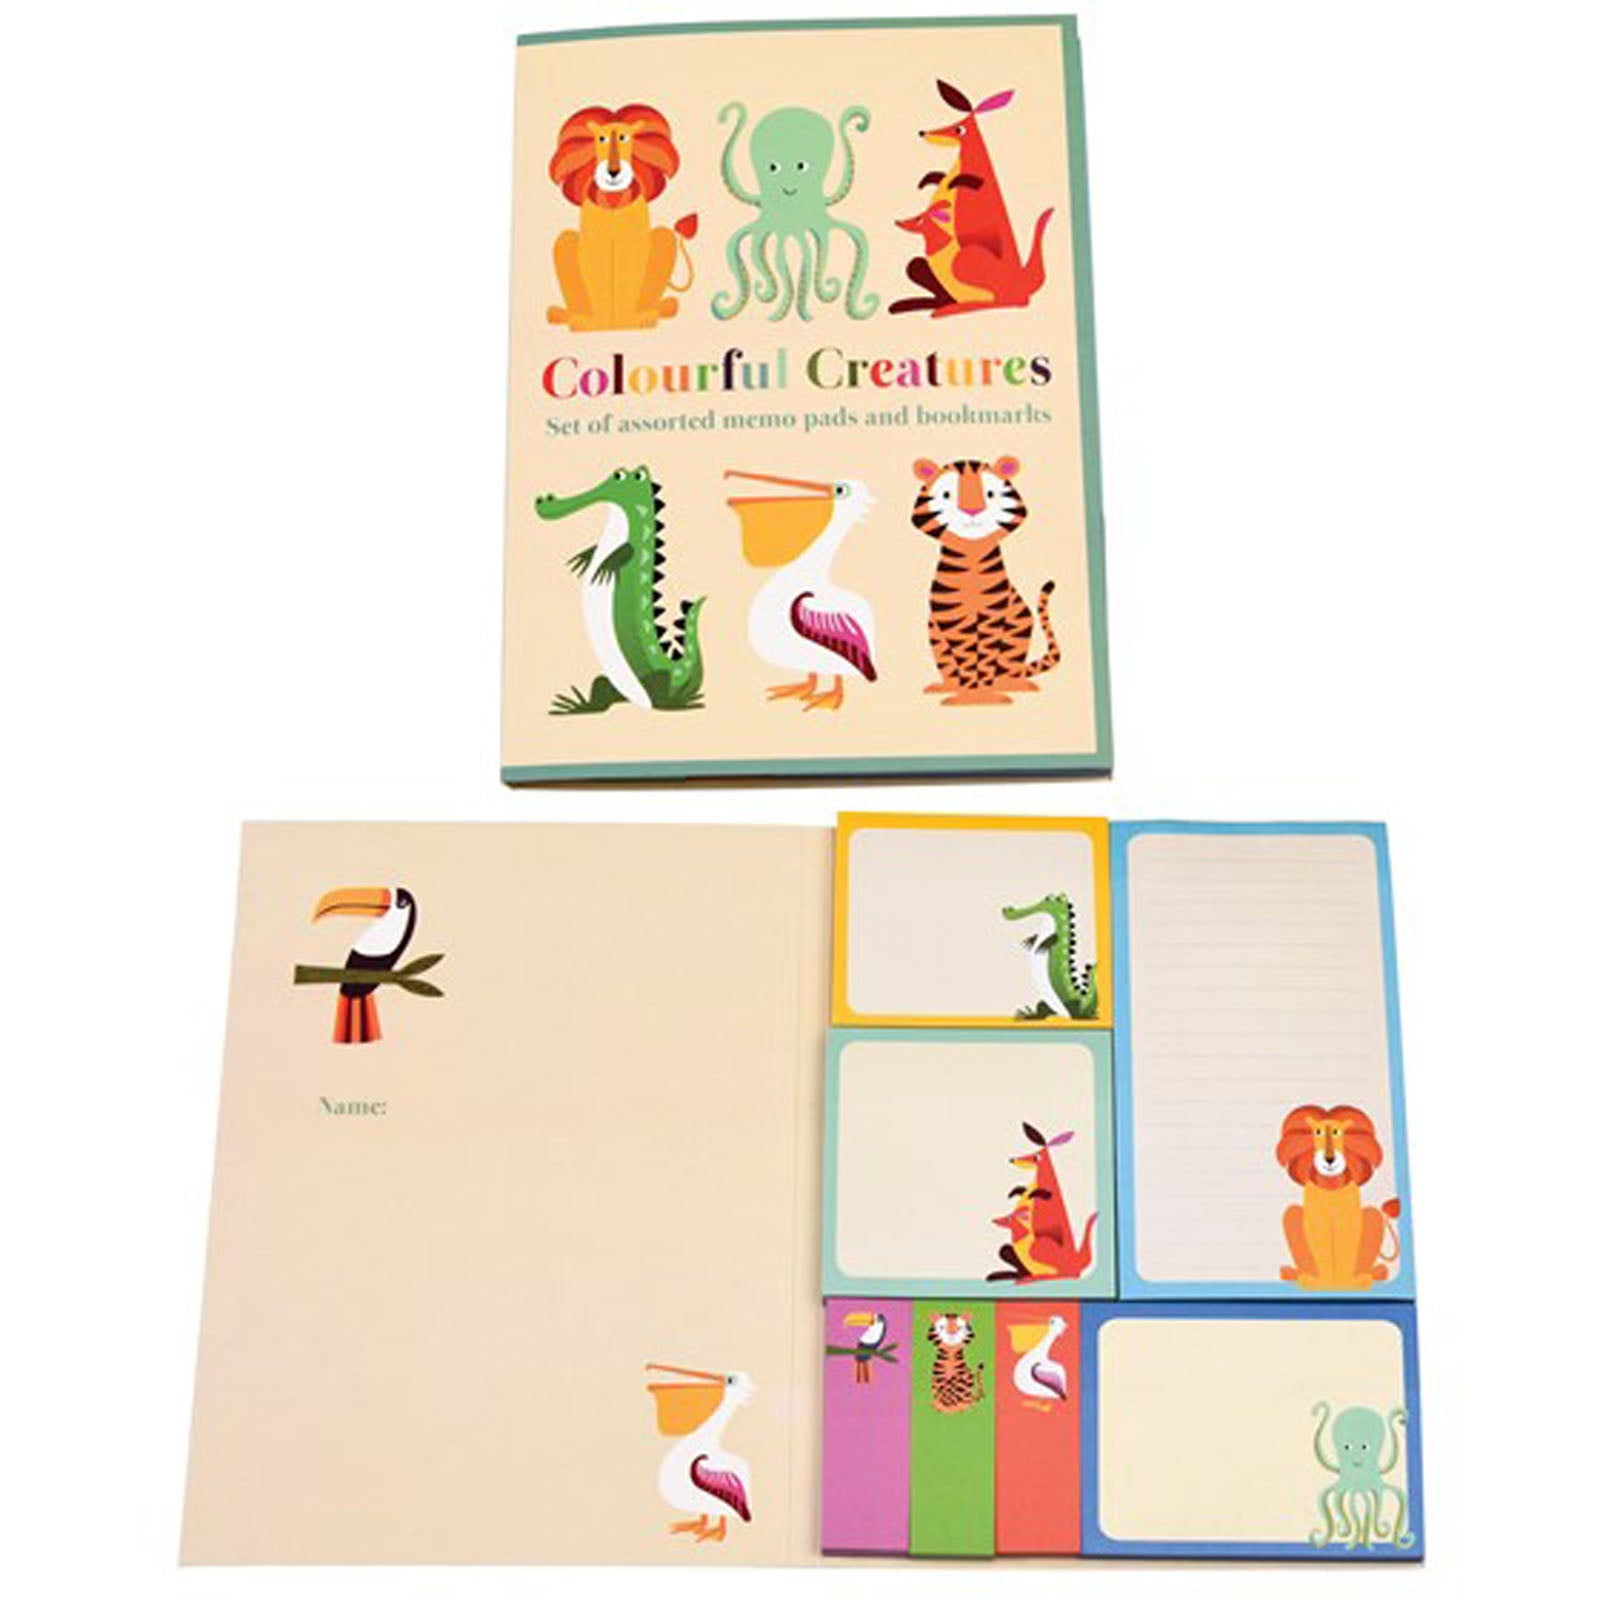 COLORFUL CREATURES MEMO PADS